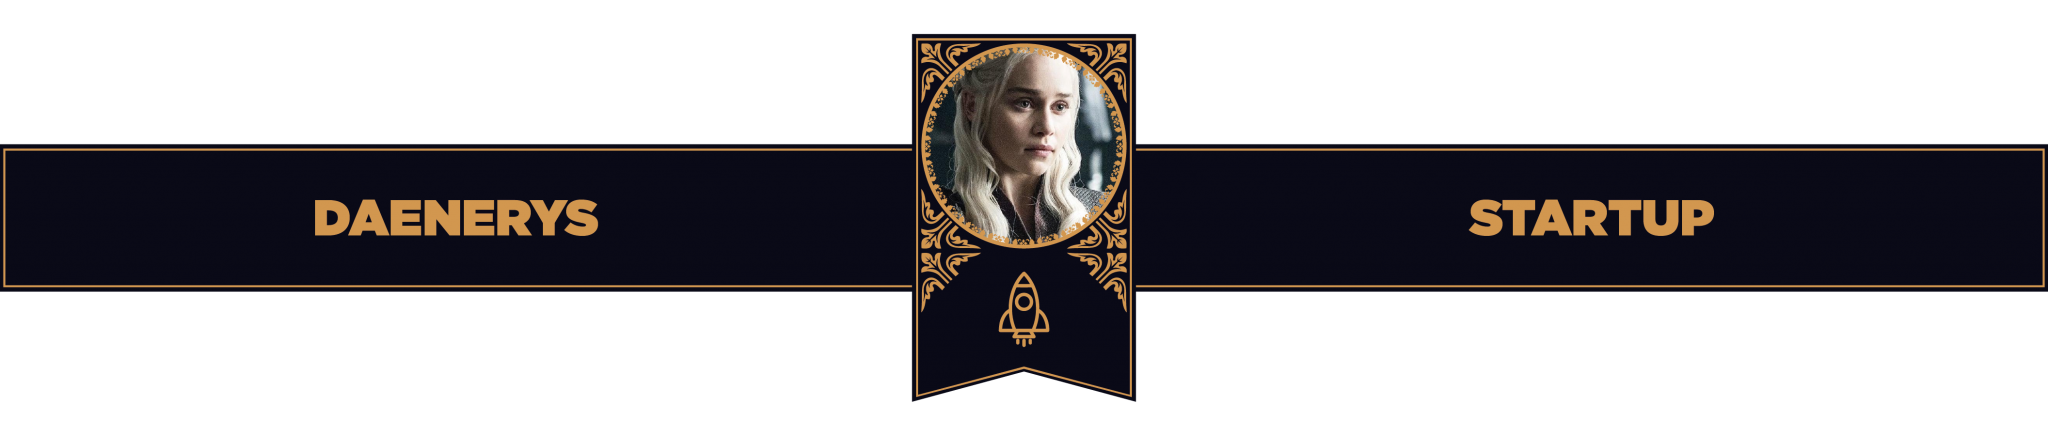 game of thrones banner of Daenerys